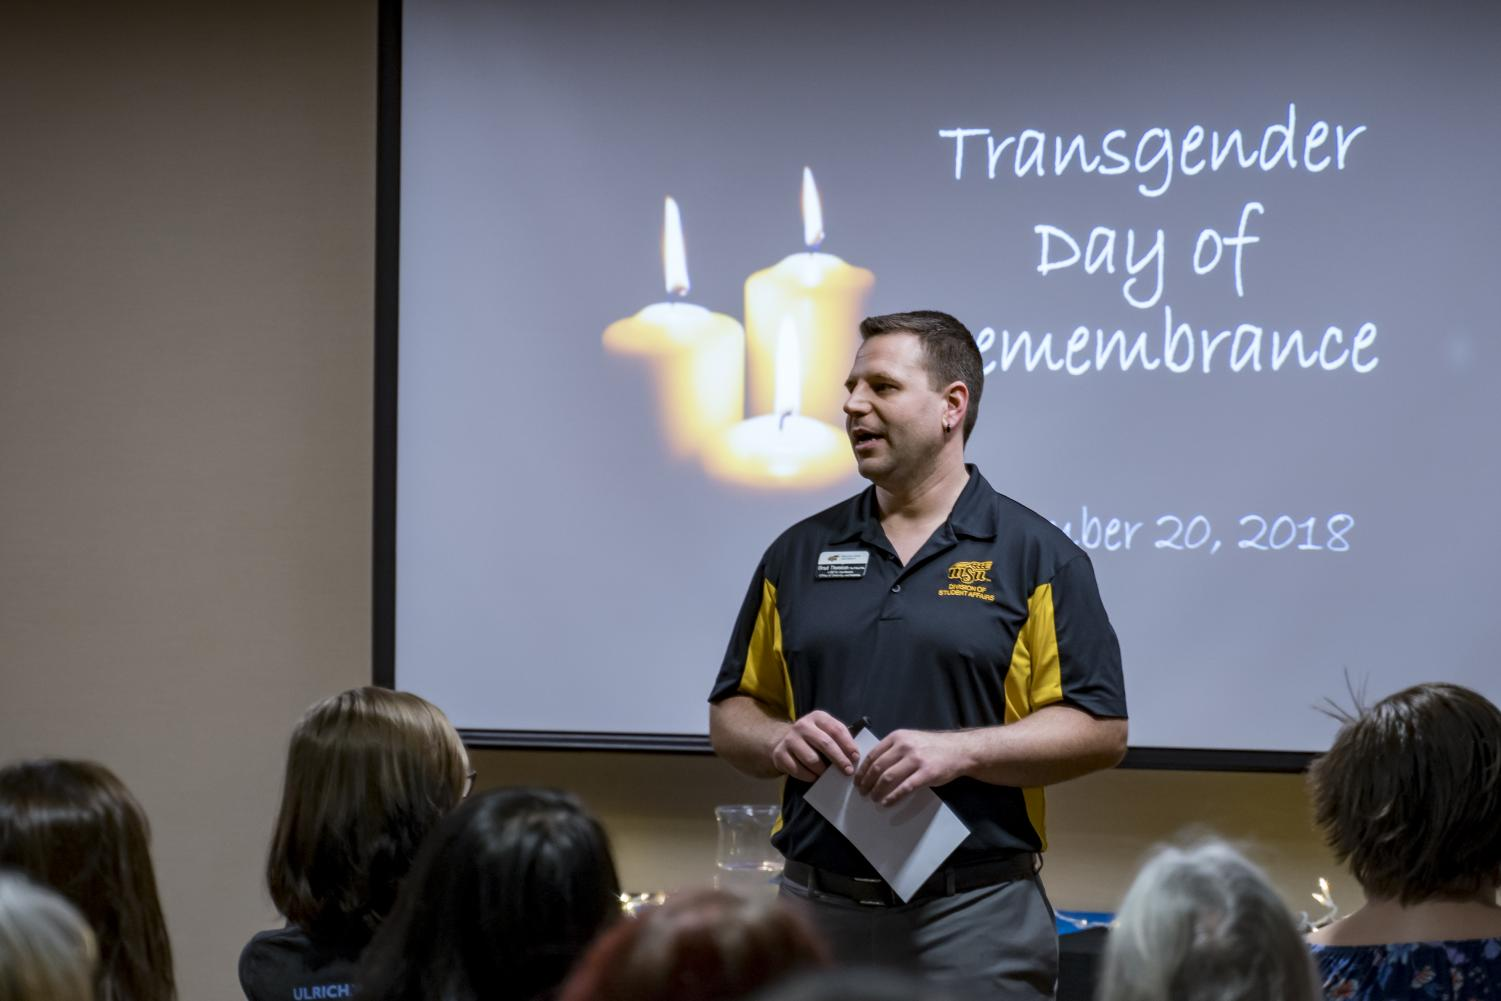 The director LGBTQ Coordinator for WSU, Bradley Thomison, speaks during Transgender Day of Remembrance observance at WSU.